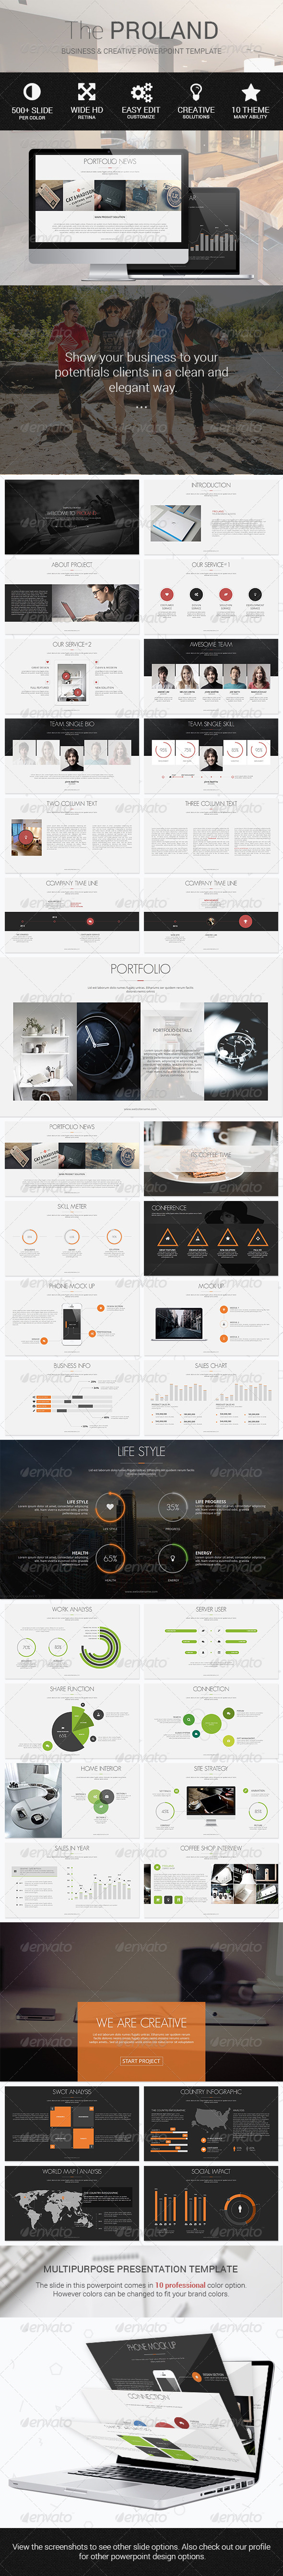 GraphicRiver Proland Powerpoint Multipurpose Template 8516917